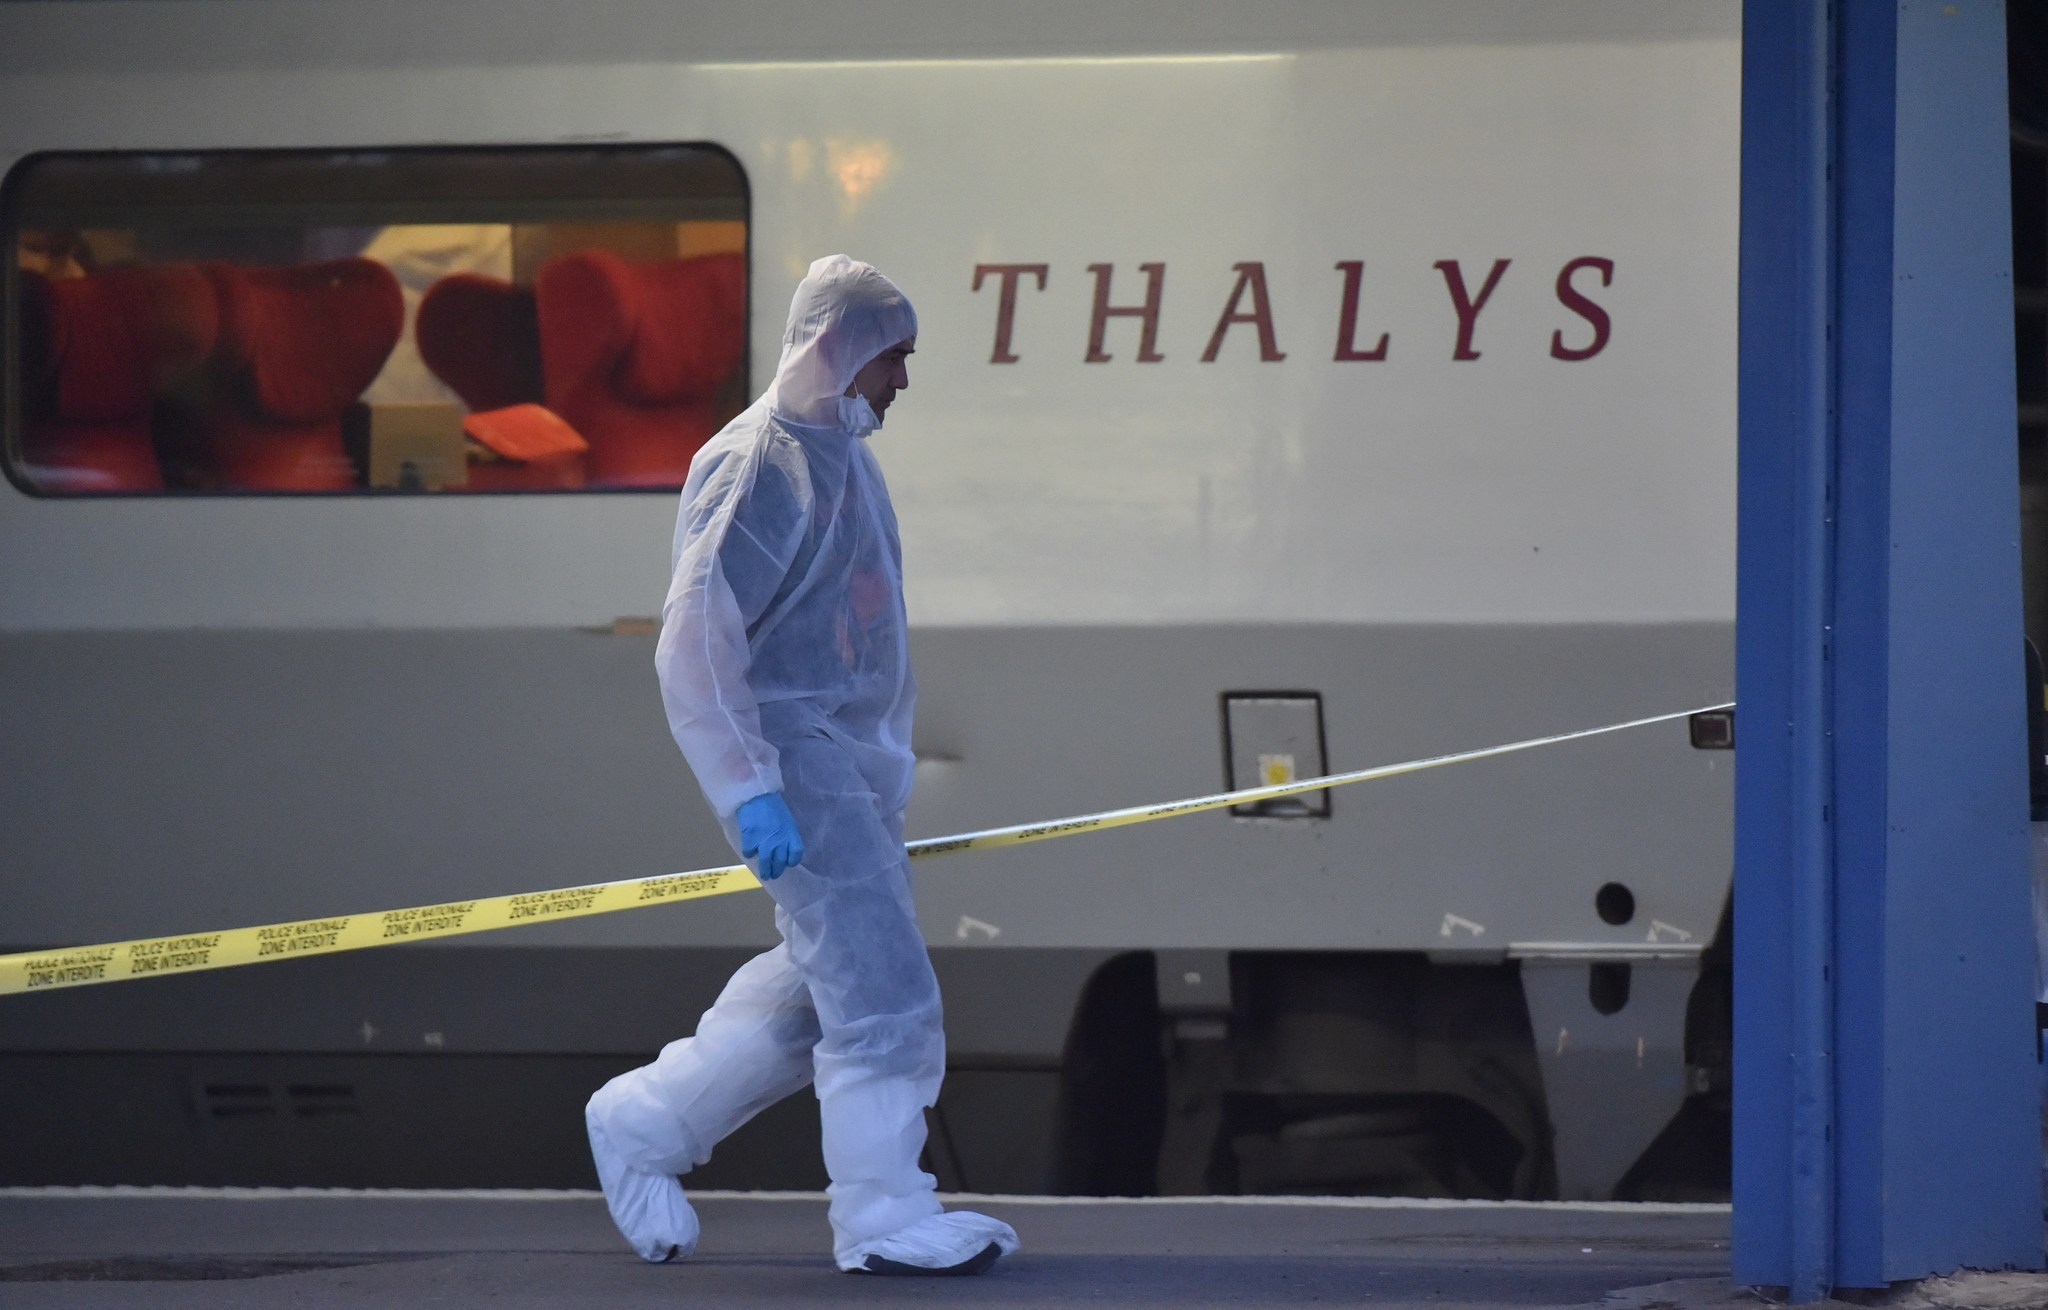 Police walk on a platform next to a Thalys train of French national railway operator SNCF in Arras, after a gunman opened fire on a train traveling from Amsterdam to Paris.